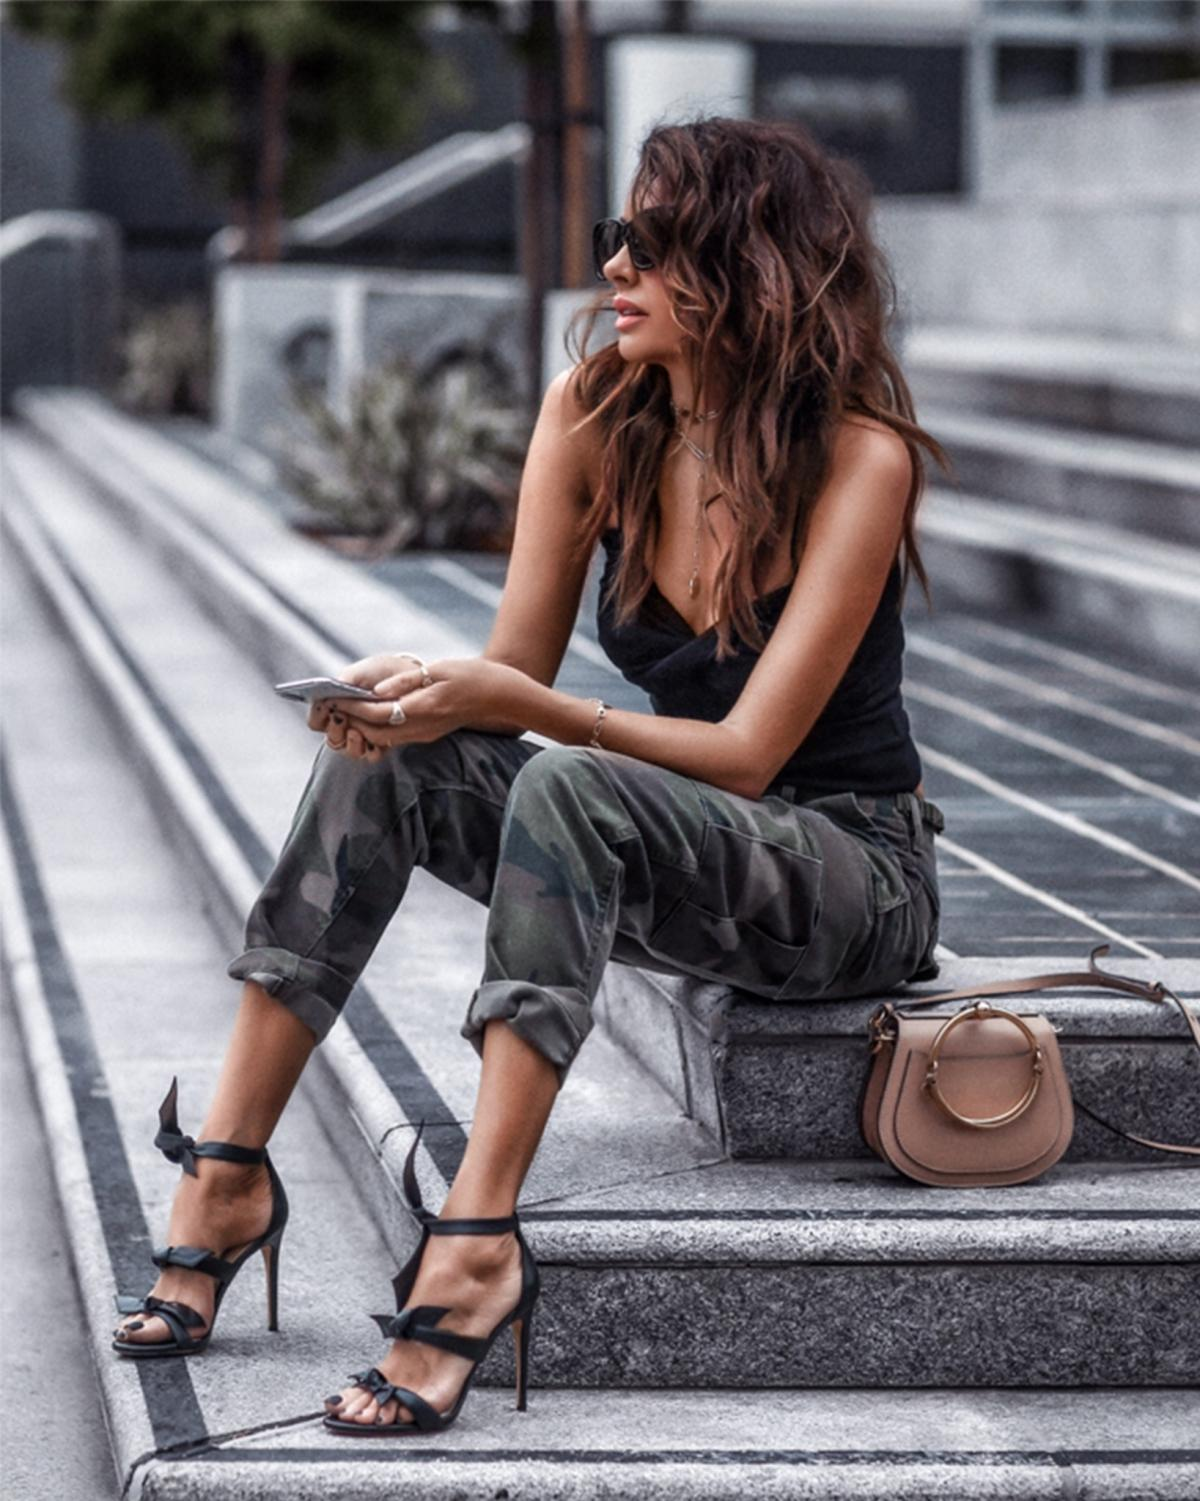 Want to experiment? Swap your regular jeans for military-style pants